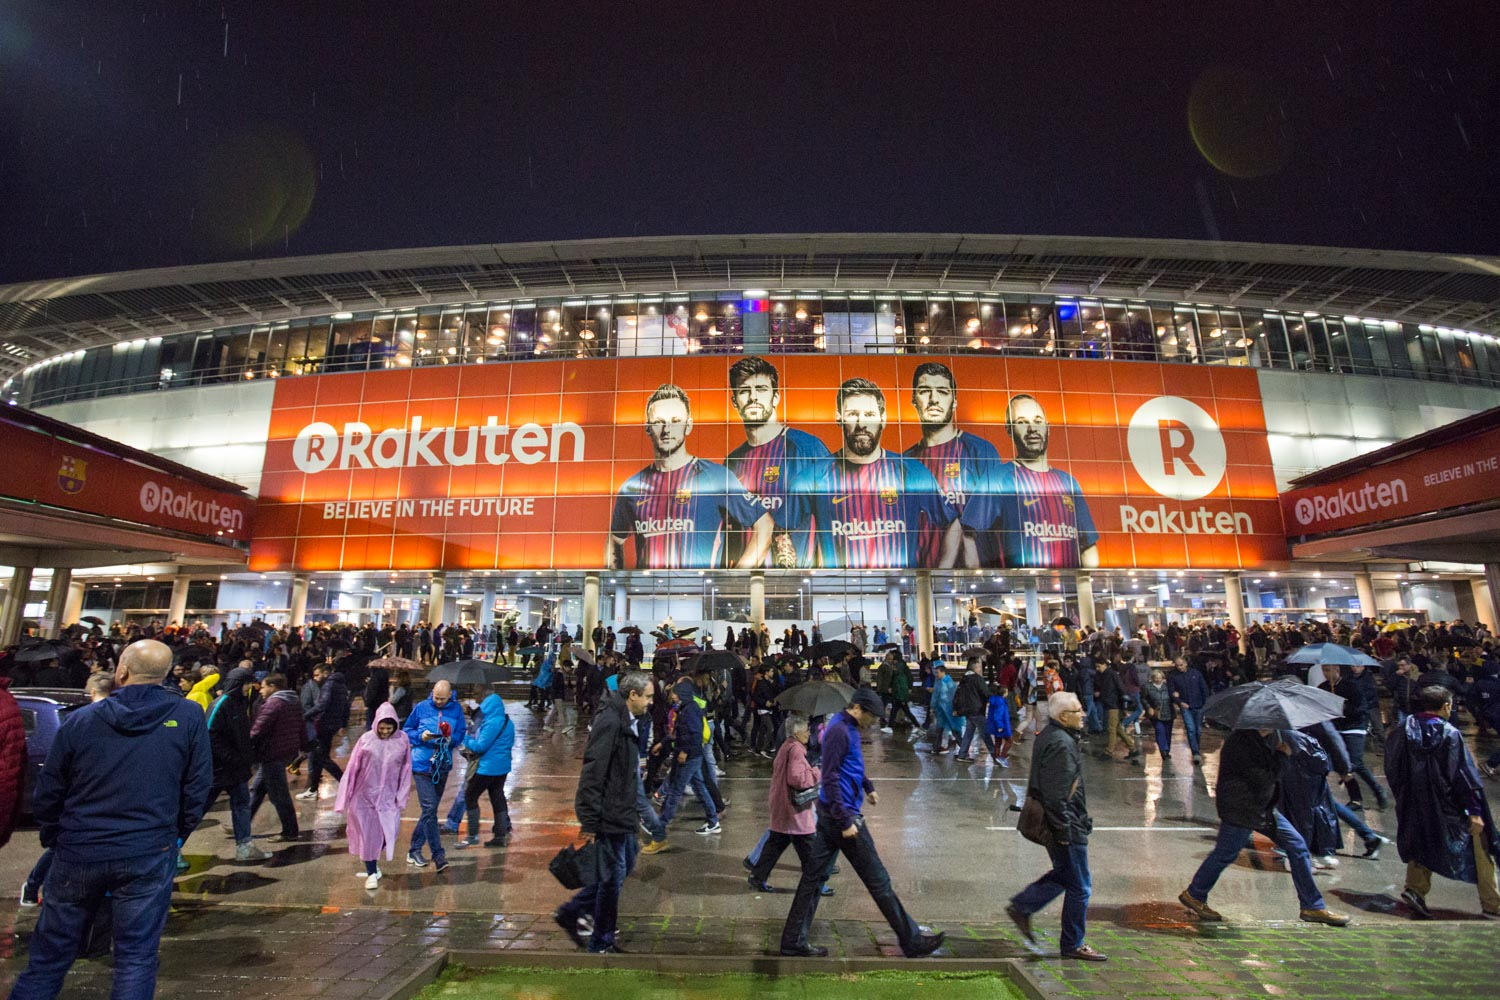 Rakuten connects with FC Barcelona fans at Camp Nou